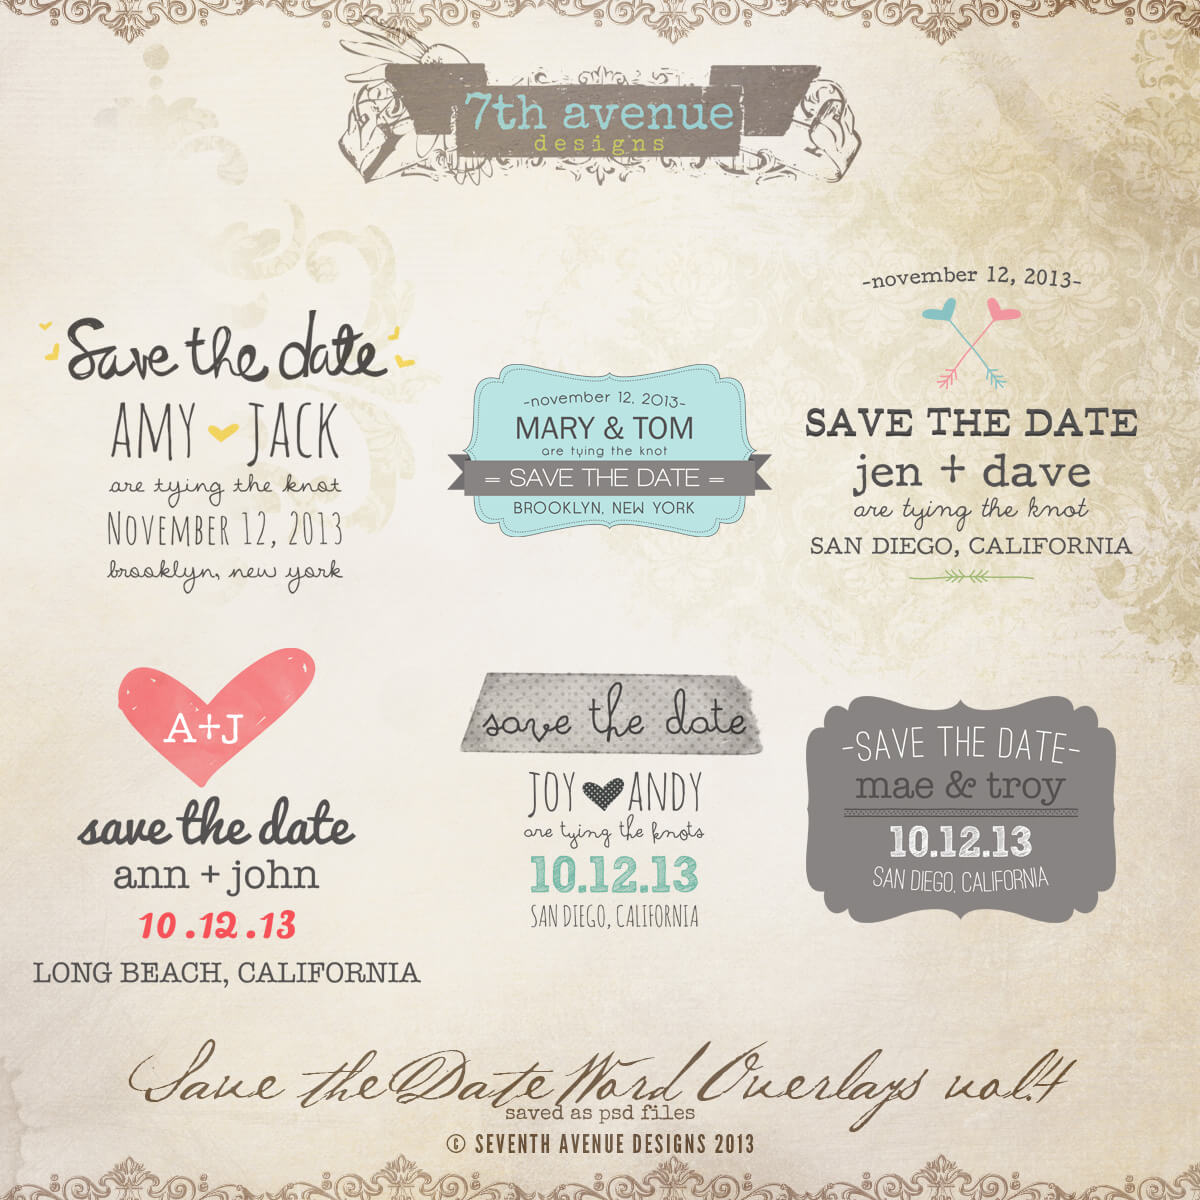 013 Save The Date Template Word Remarkable Ideas Free Within Save The Date Templates Word